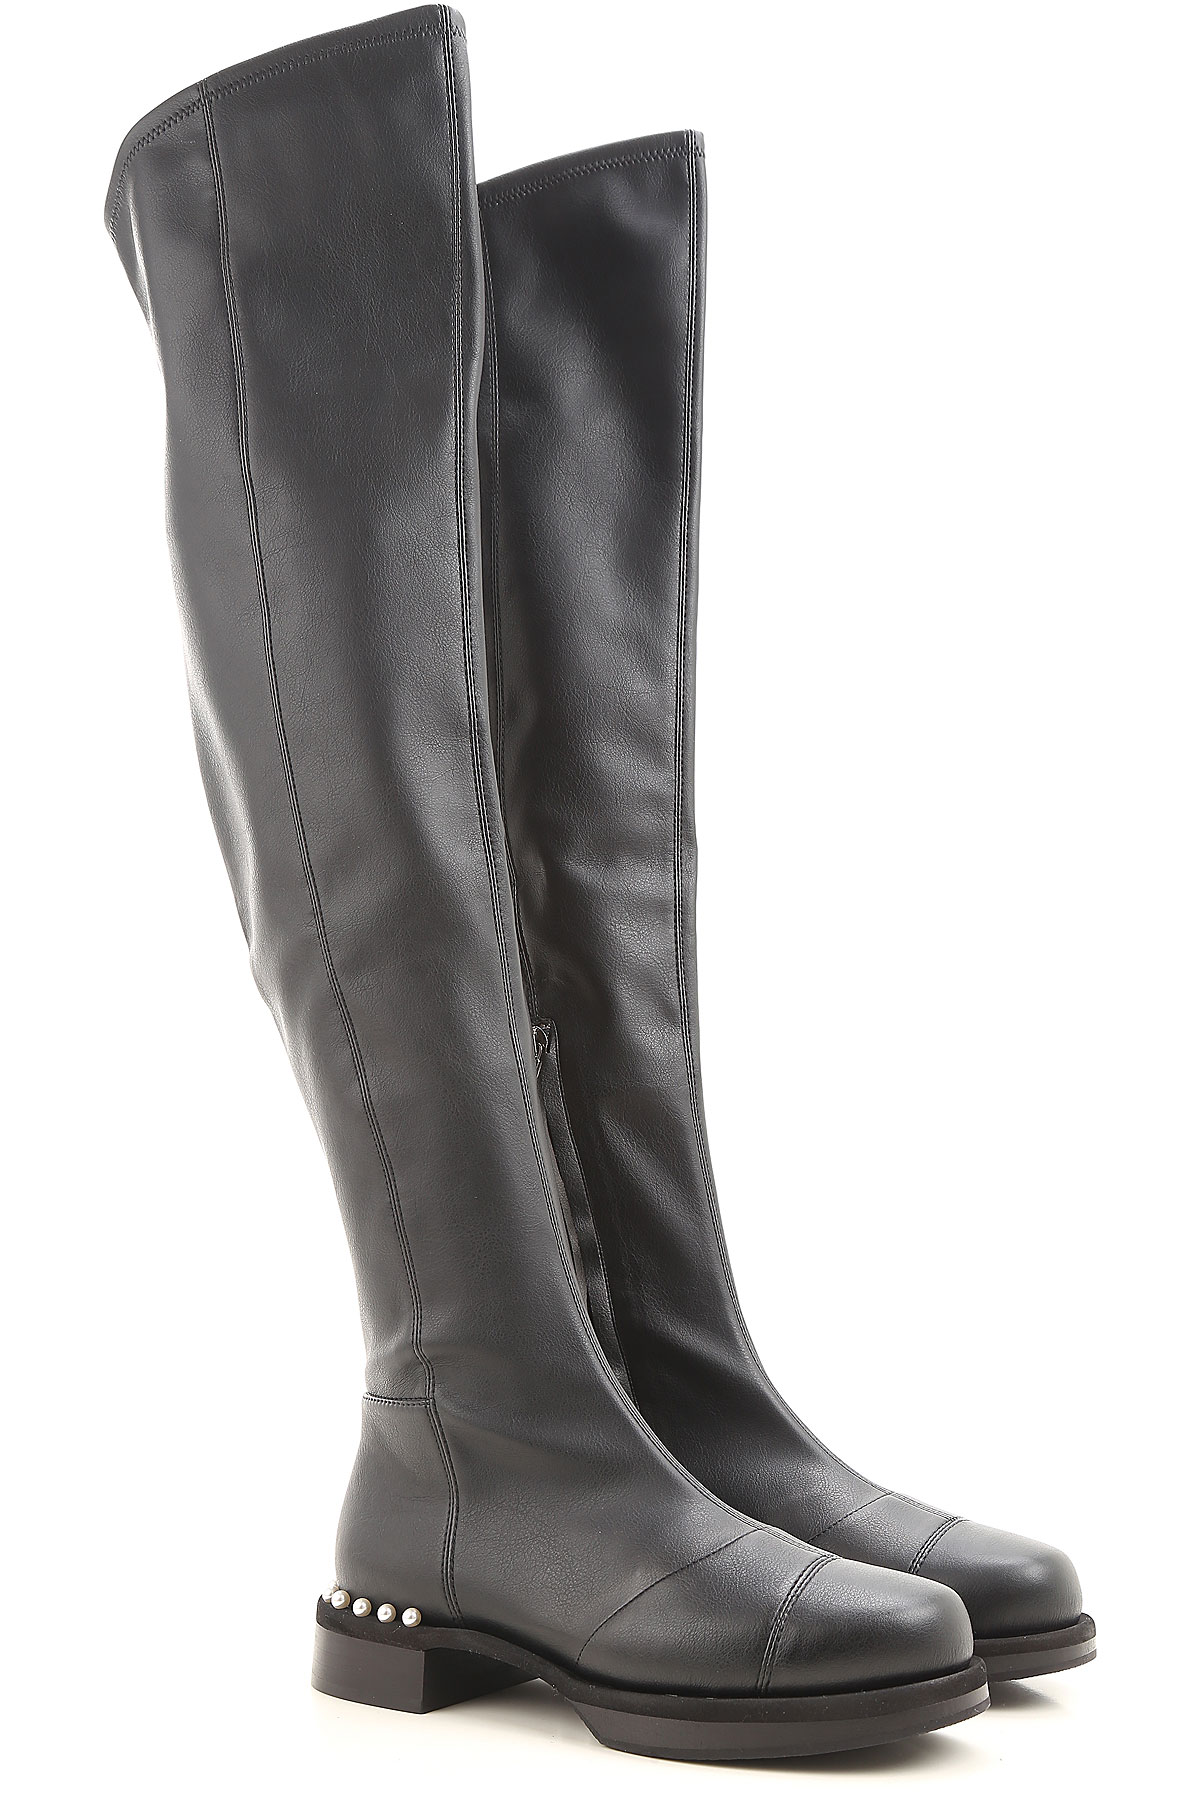 Image of Grey Mer Boots for Women, Booties On Sale in Outlet, Black, Leather, 2017, 8.5 9